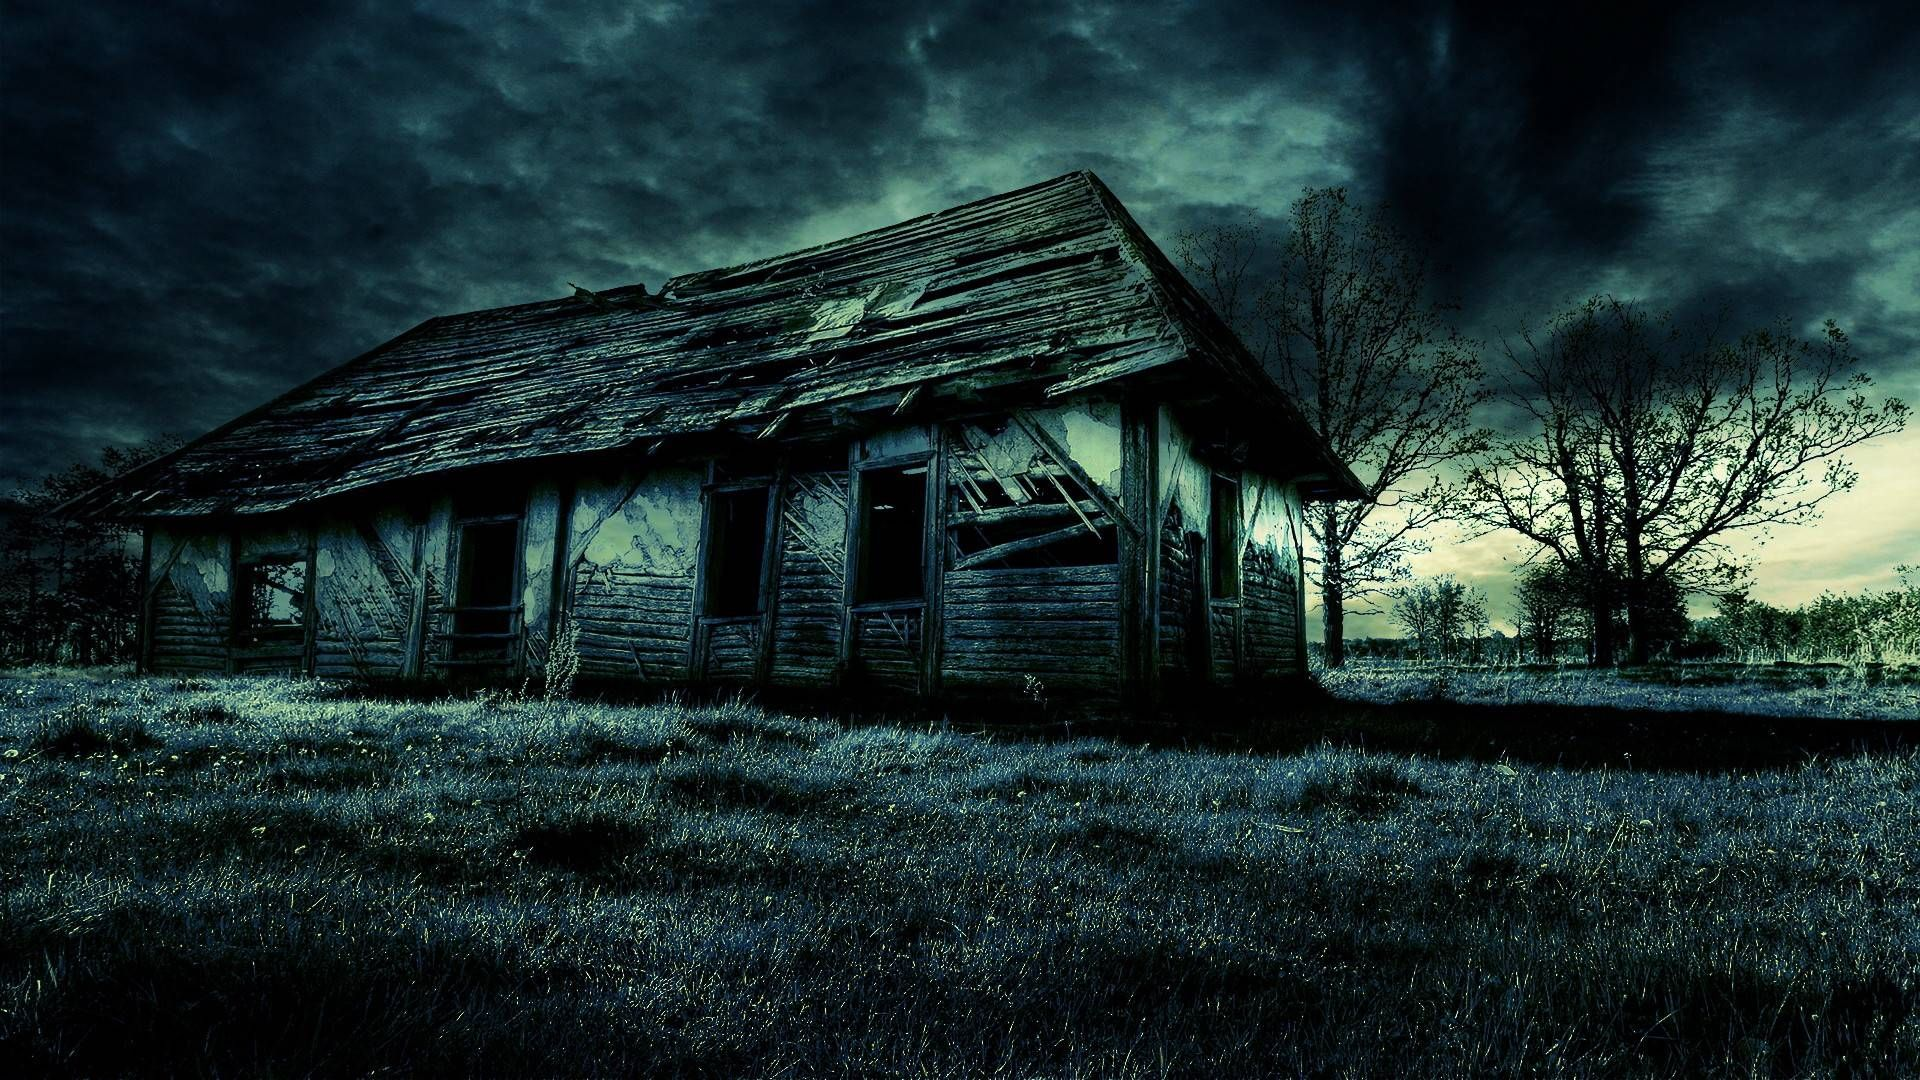 Gothic Hd Wallpapers Backgrounds Wallpaper 16001200 Gothic